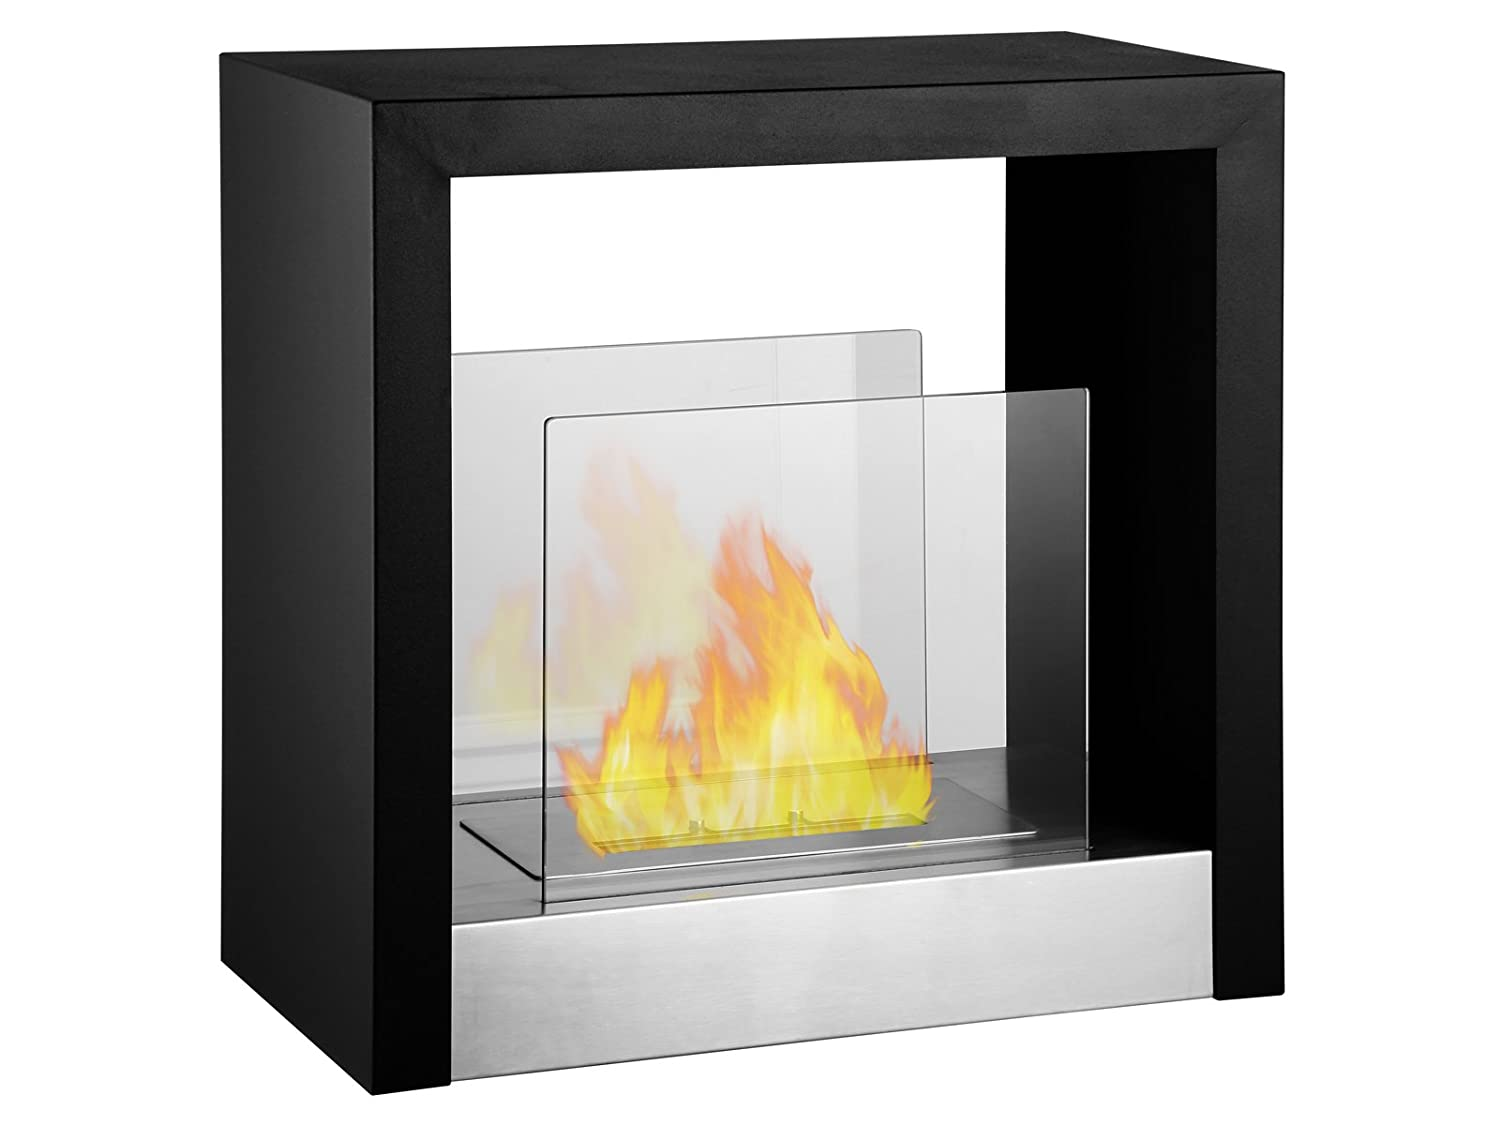 Ignis Tectum S Freestanding Ventless Ethanol Fireplace Ignis Products FSF-025